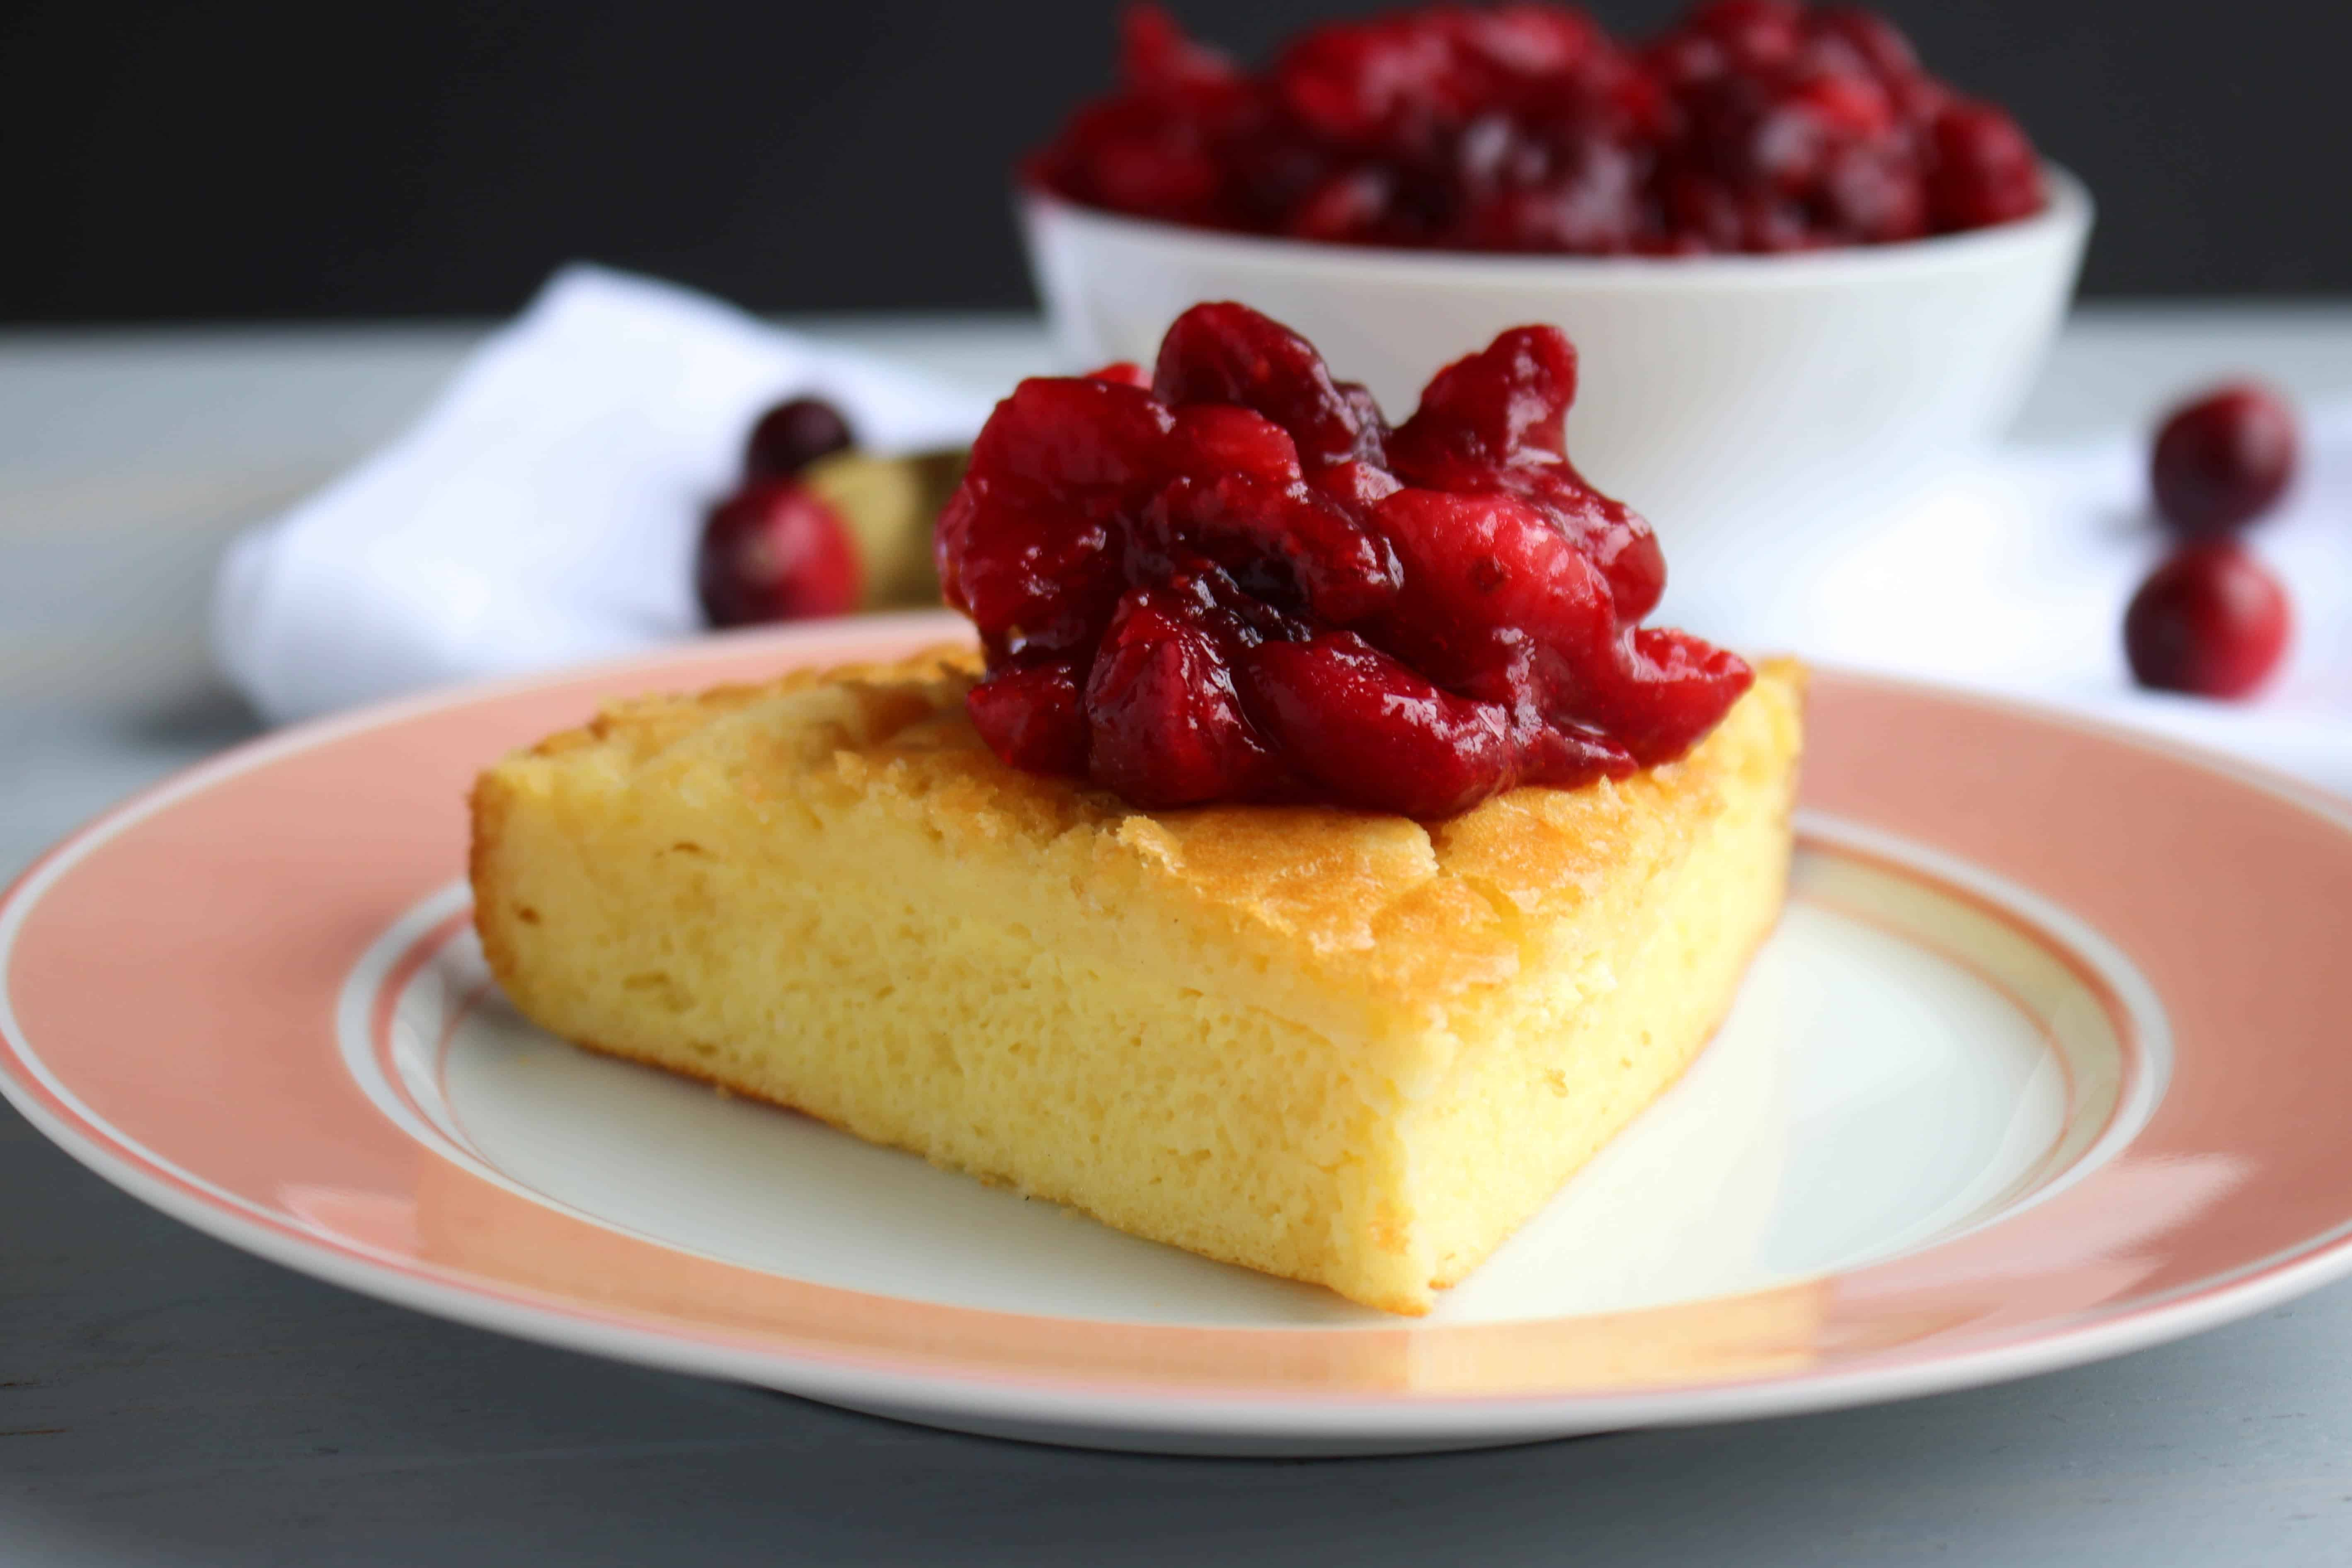 Classic Cranberry Sauce as a topping